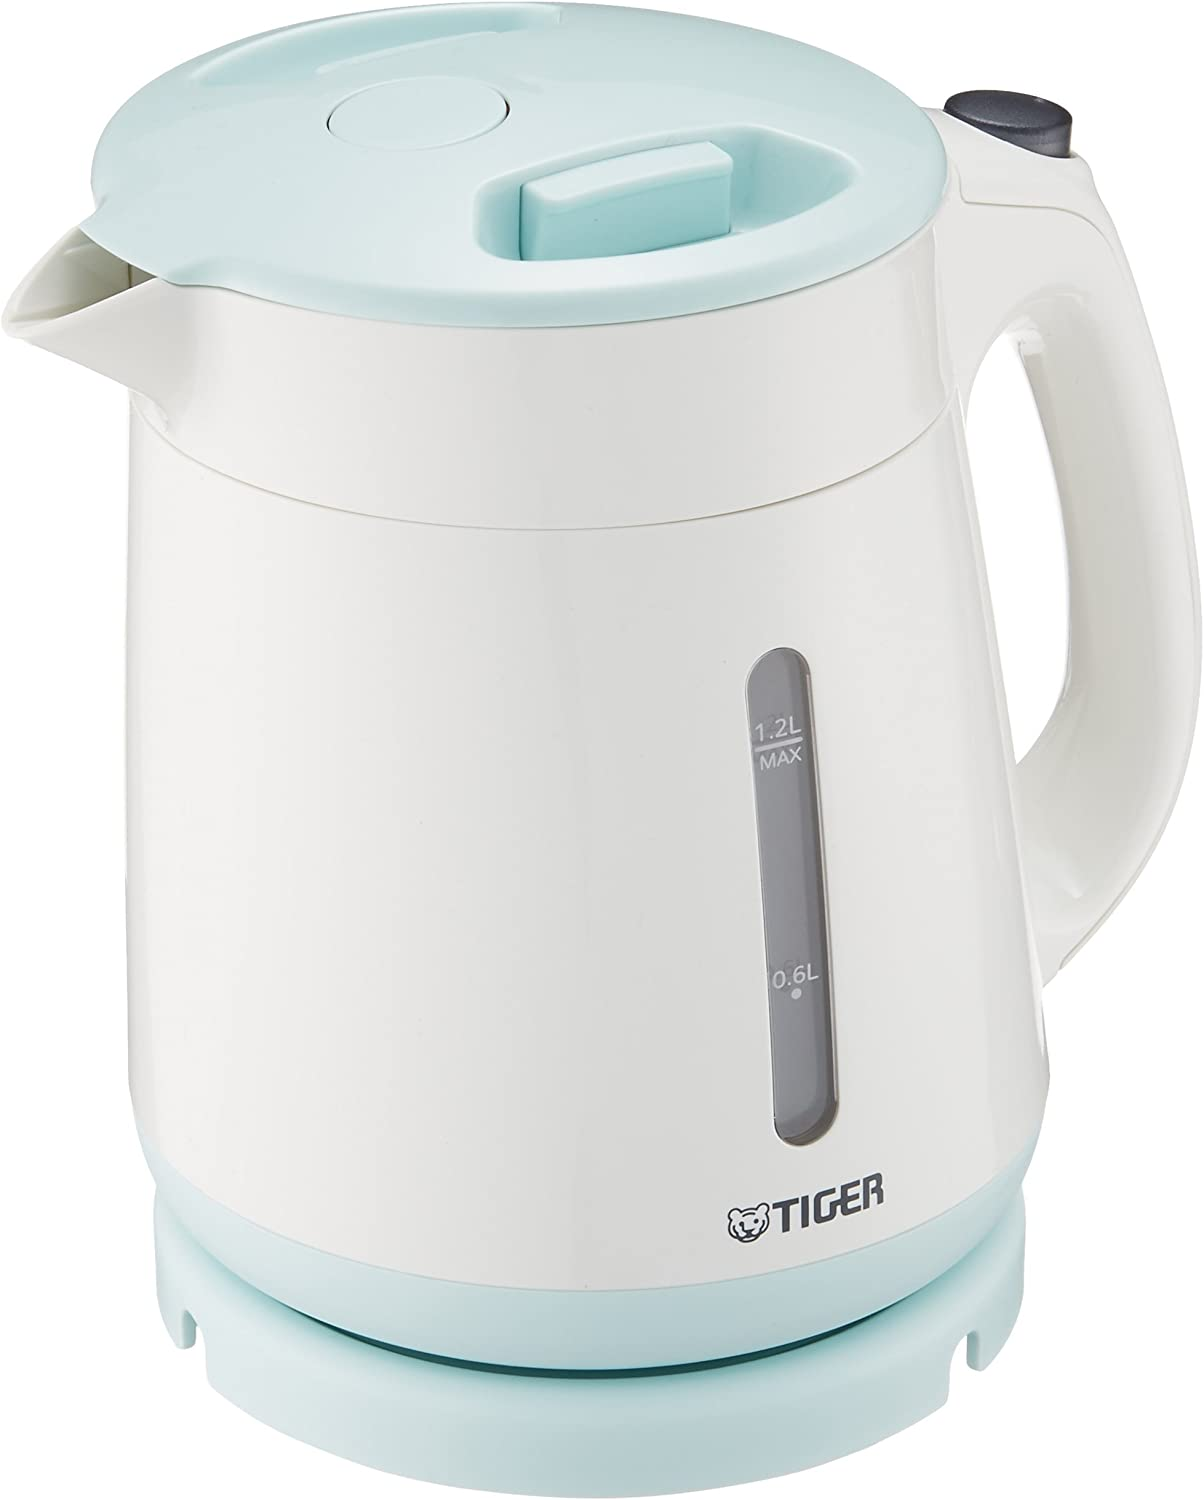 Tiger thermos electric kettle 1.2L Green Wakuko PCI G120 G